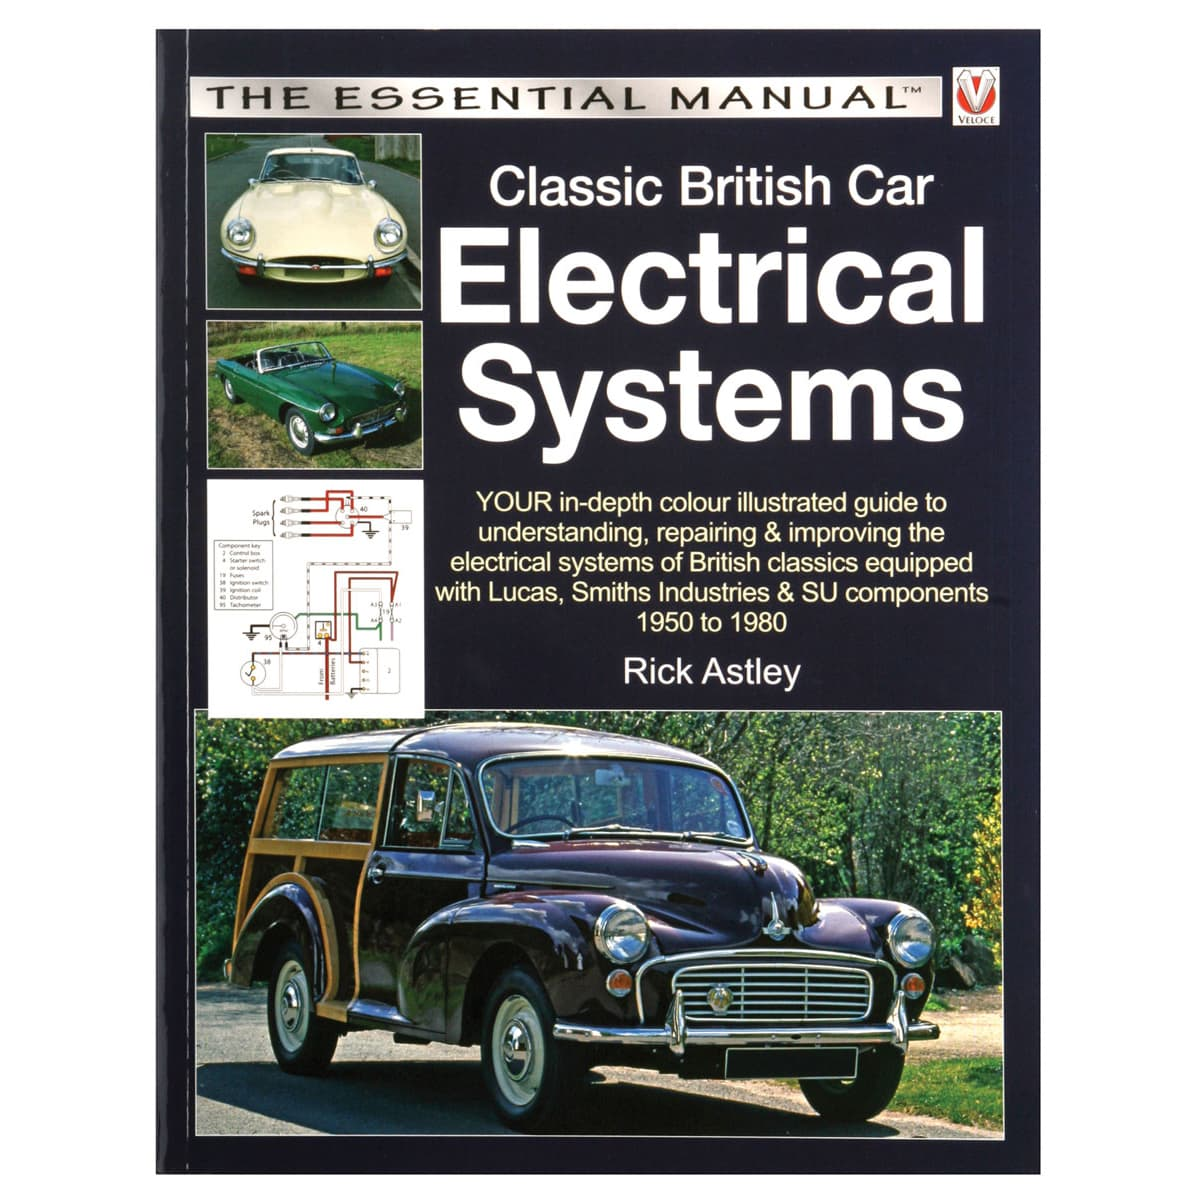 213 755 Electrical Maintenance Handbook Moss Motors 1968 Triumph Tr250 Wiring Diagram Book Classic British Car Systems